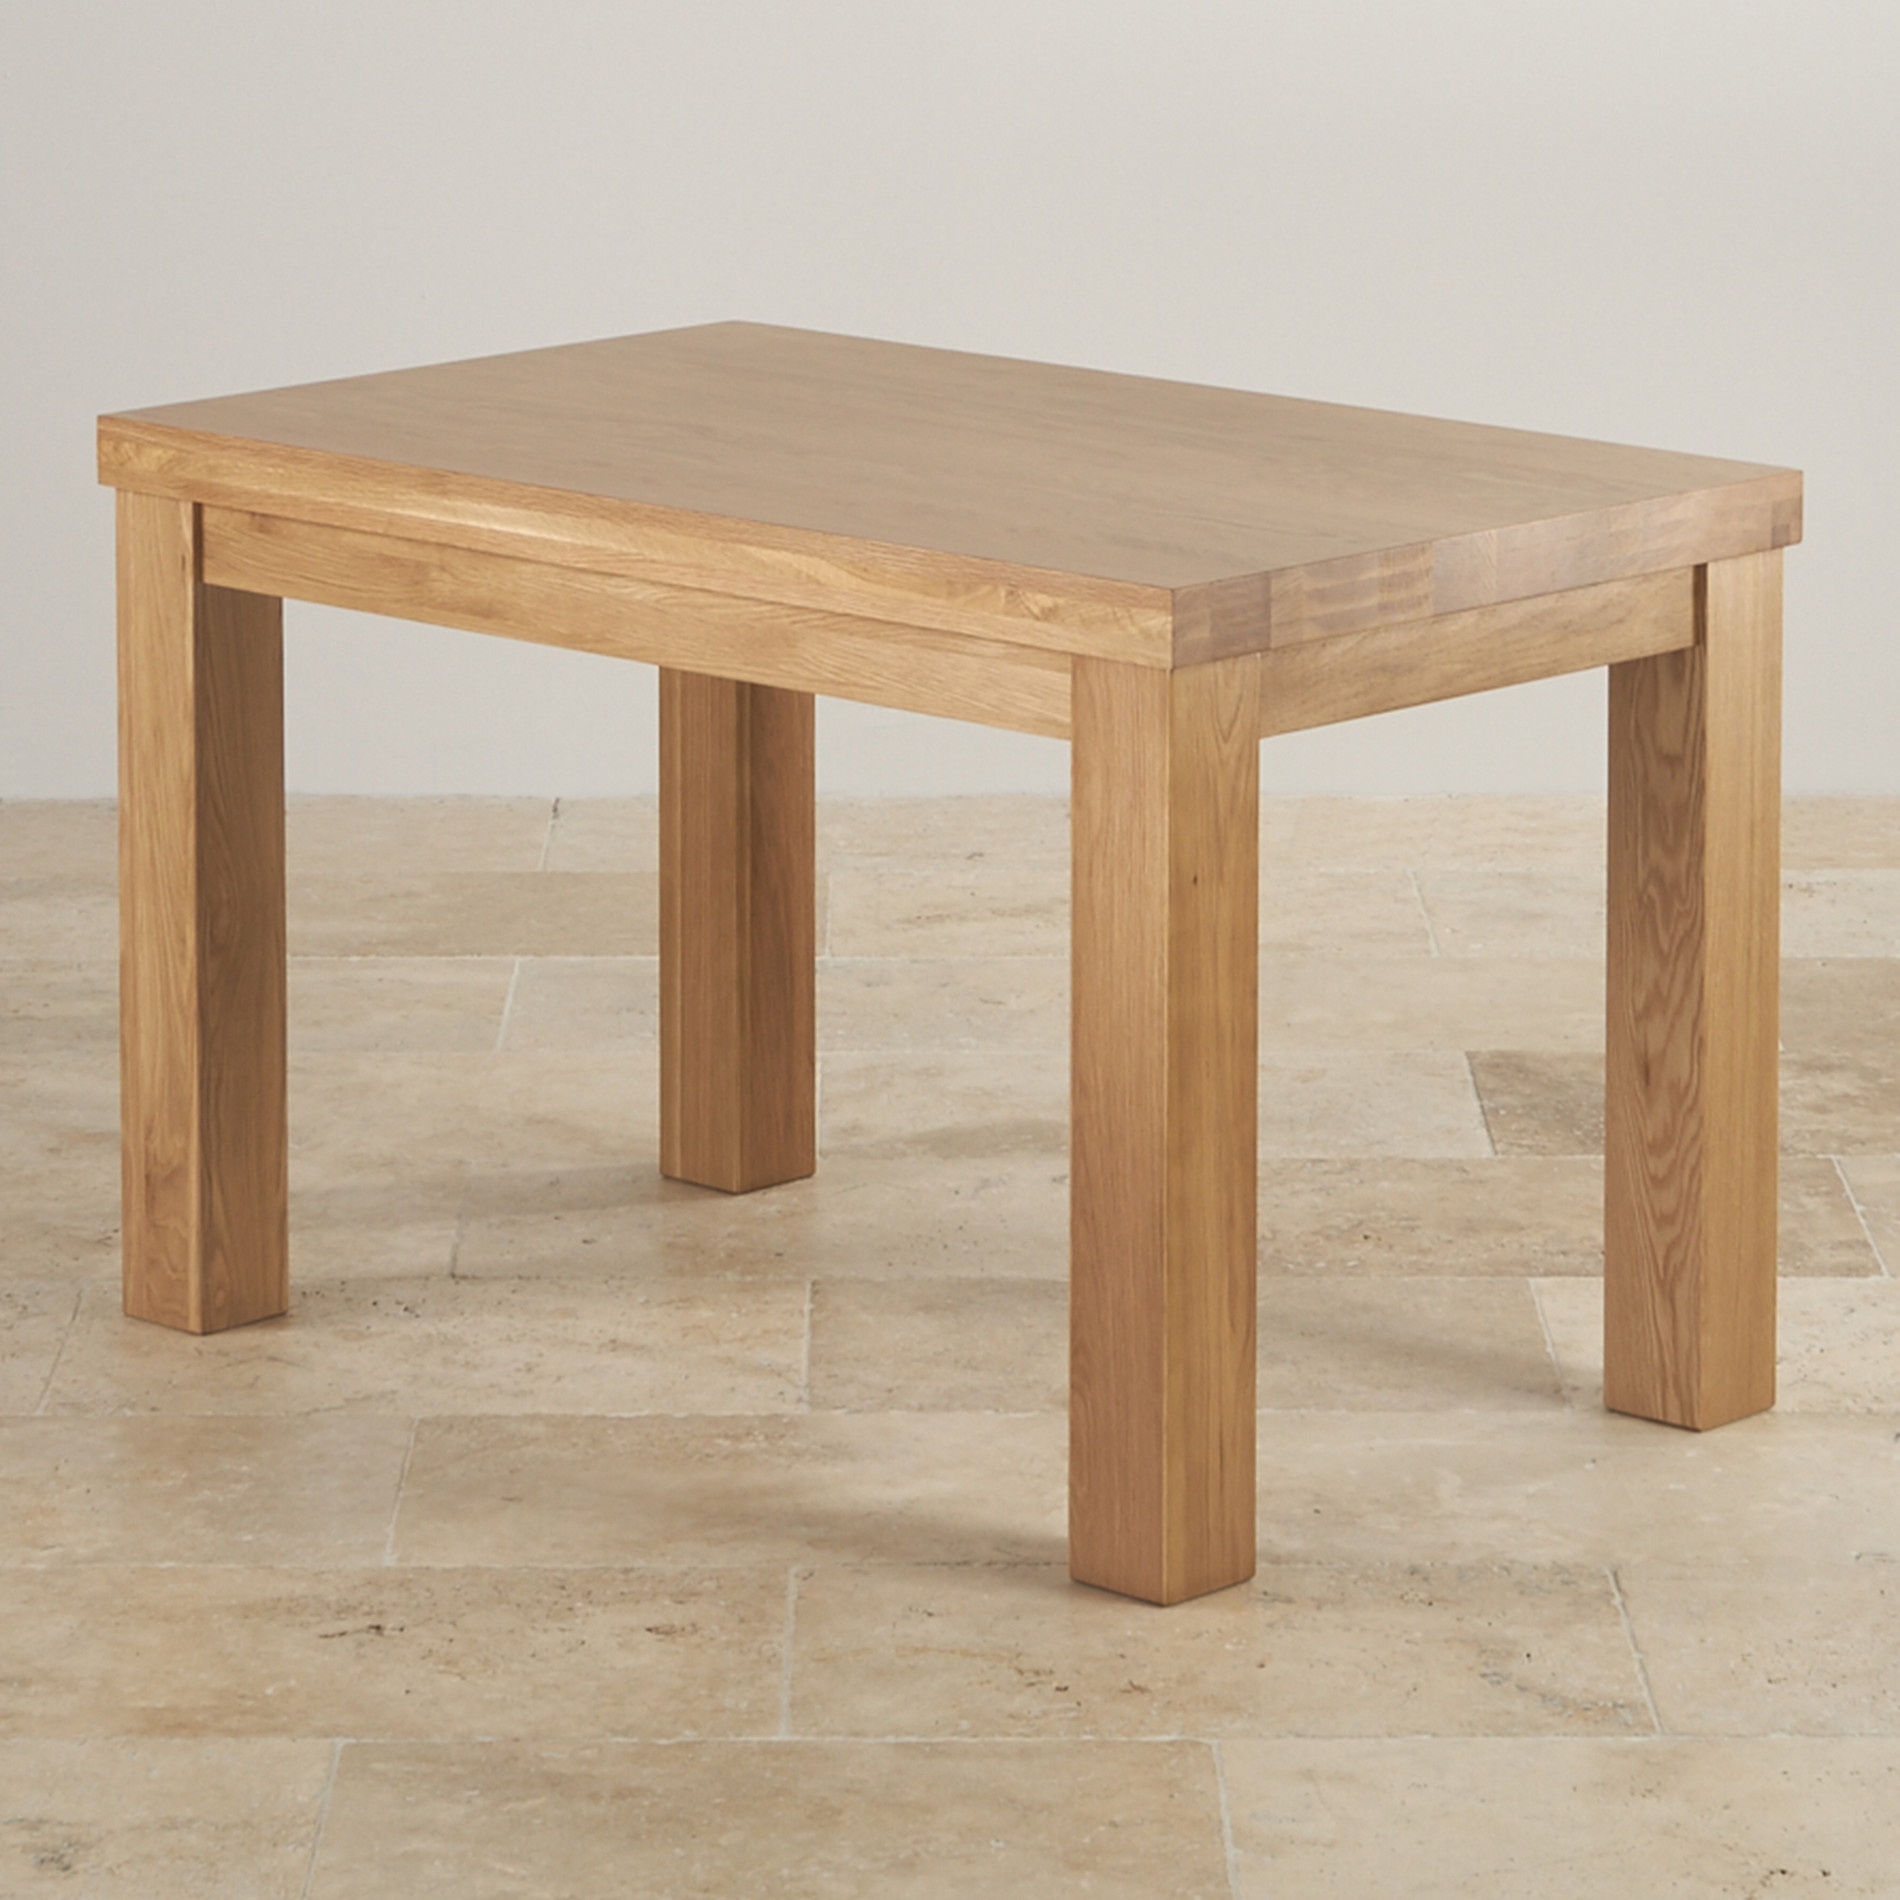 Contemporary Chunky Dining Table in Natural Oak : contemporary chunky 4ft x 2ft 6 natural solid oak dining table 56fbbd073473e from www.oakfurnitureland.co.uk size 1900 x 1900 jpeg 445kB